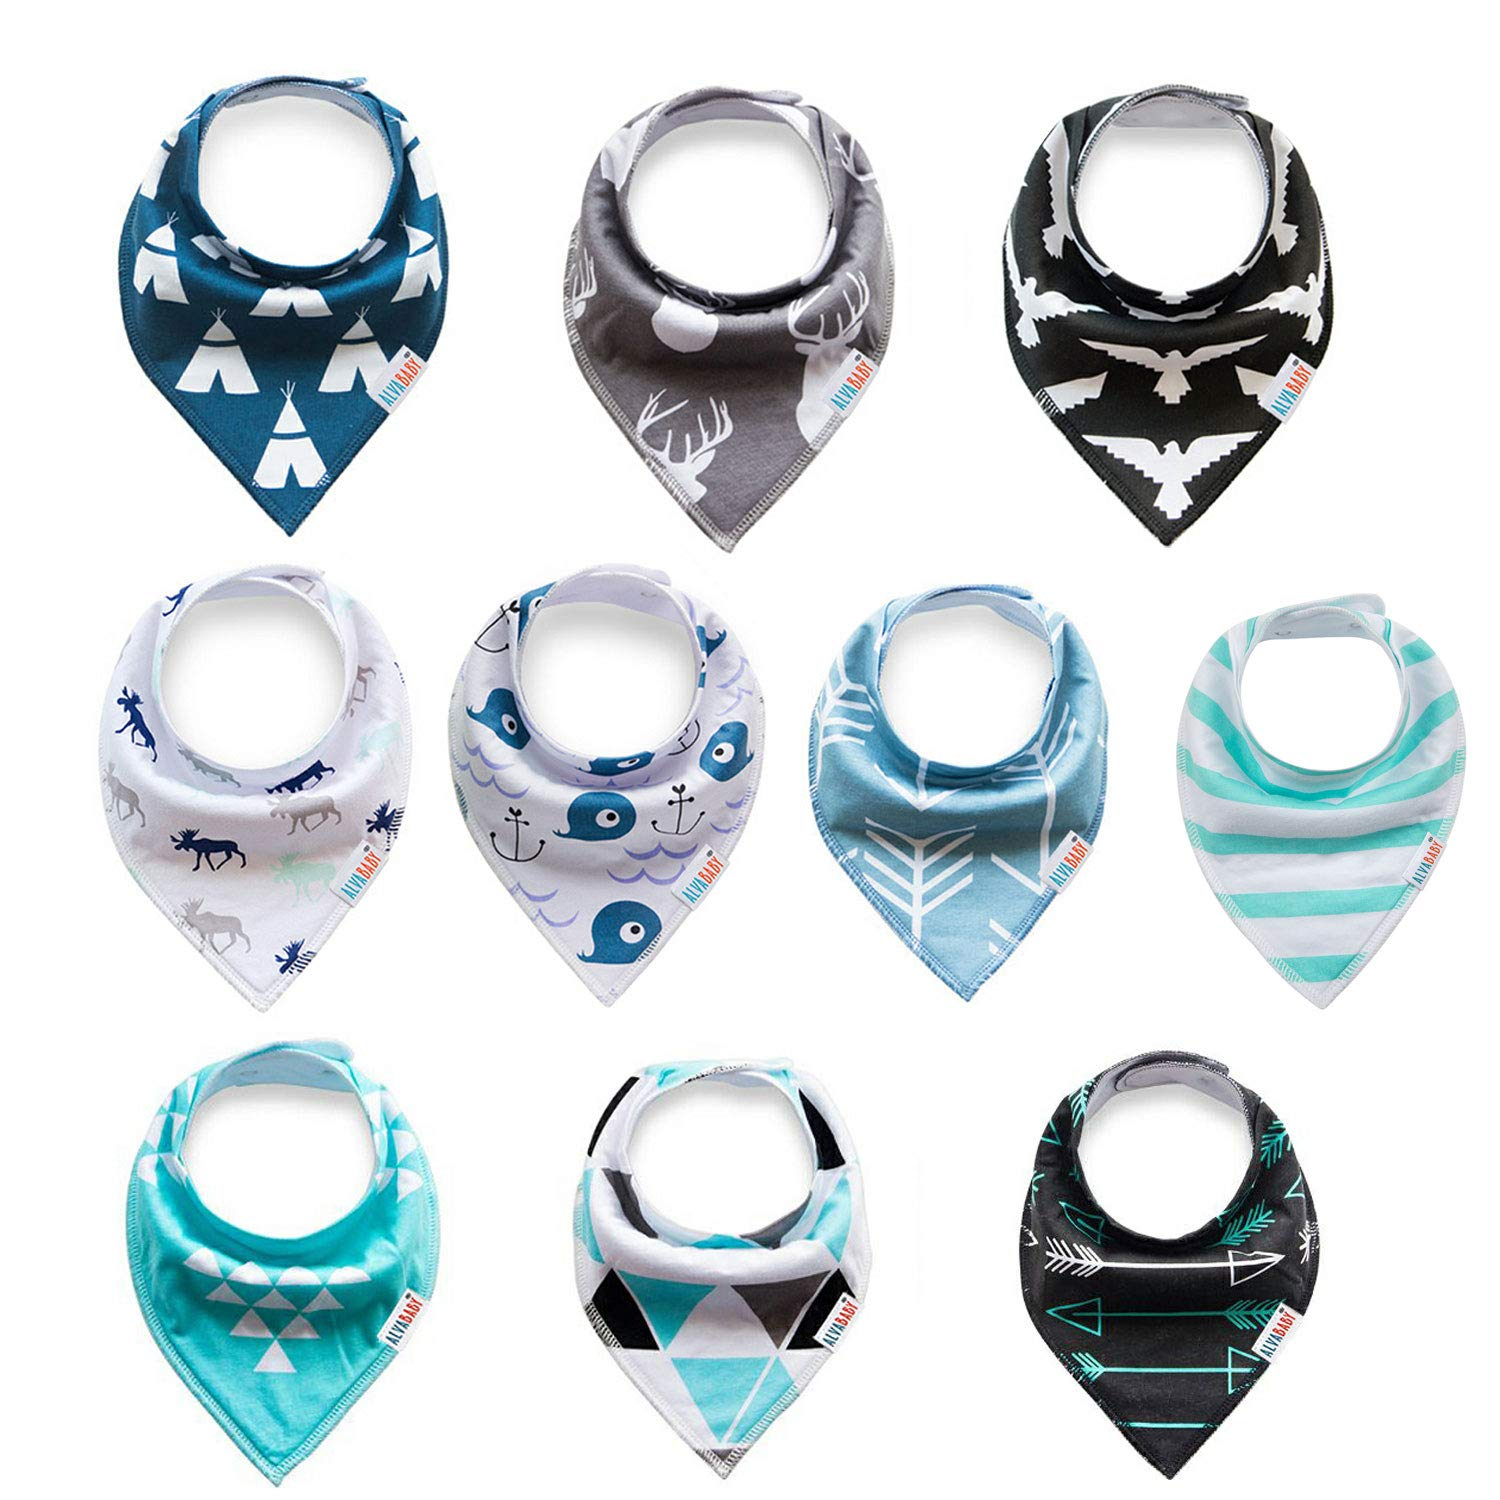 Girl sets 04 ALVABABY Baby Bandana Drool Bibs for Boys and Girls 4//8 Pack of Super Absorbent Baby Gift Settings